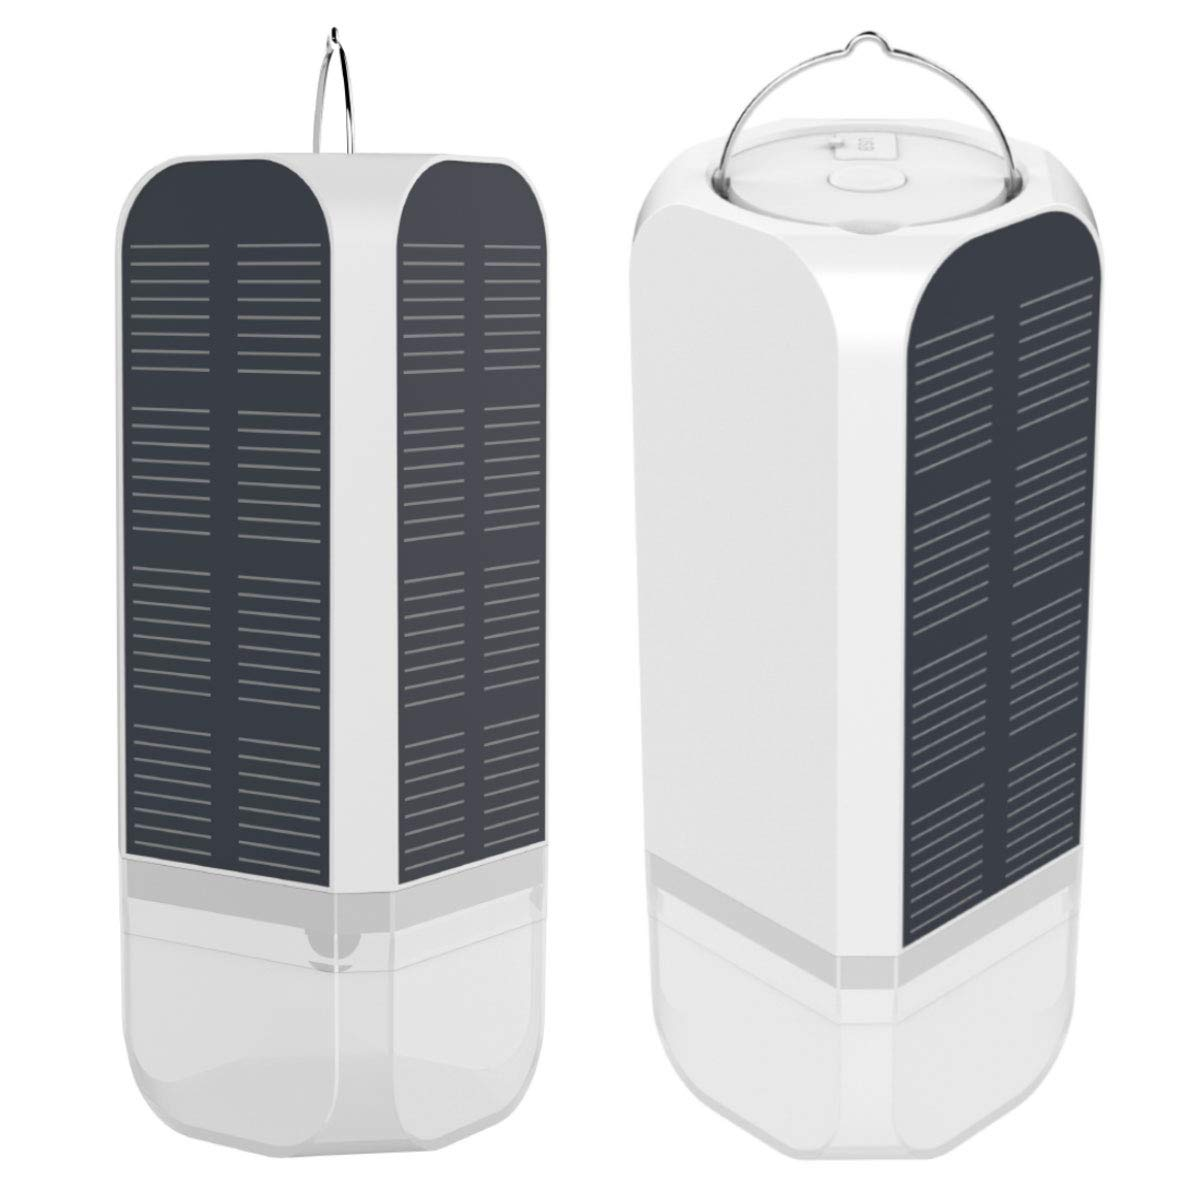 Mikimiqi Solar Camping Emergency LED Lantern Outdoor Camping Gear Hanging Portable Table Lamp with USB and Smart Solar Emergency Light Panel, White Light